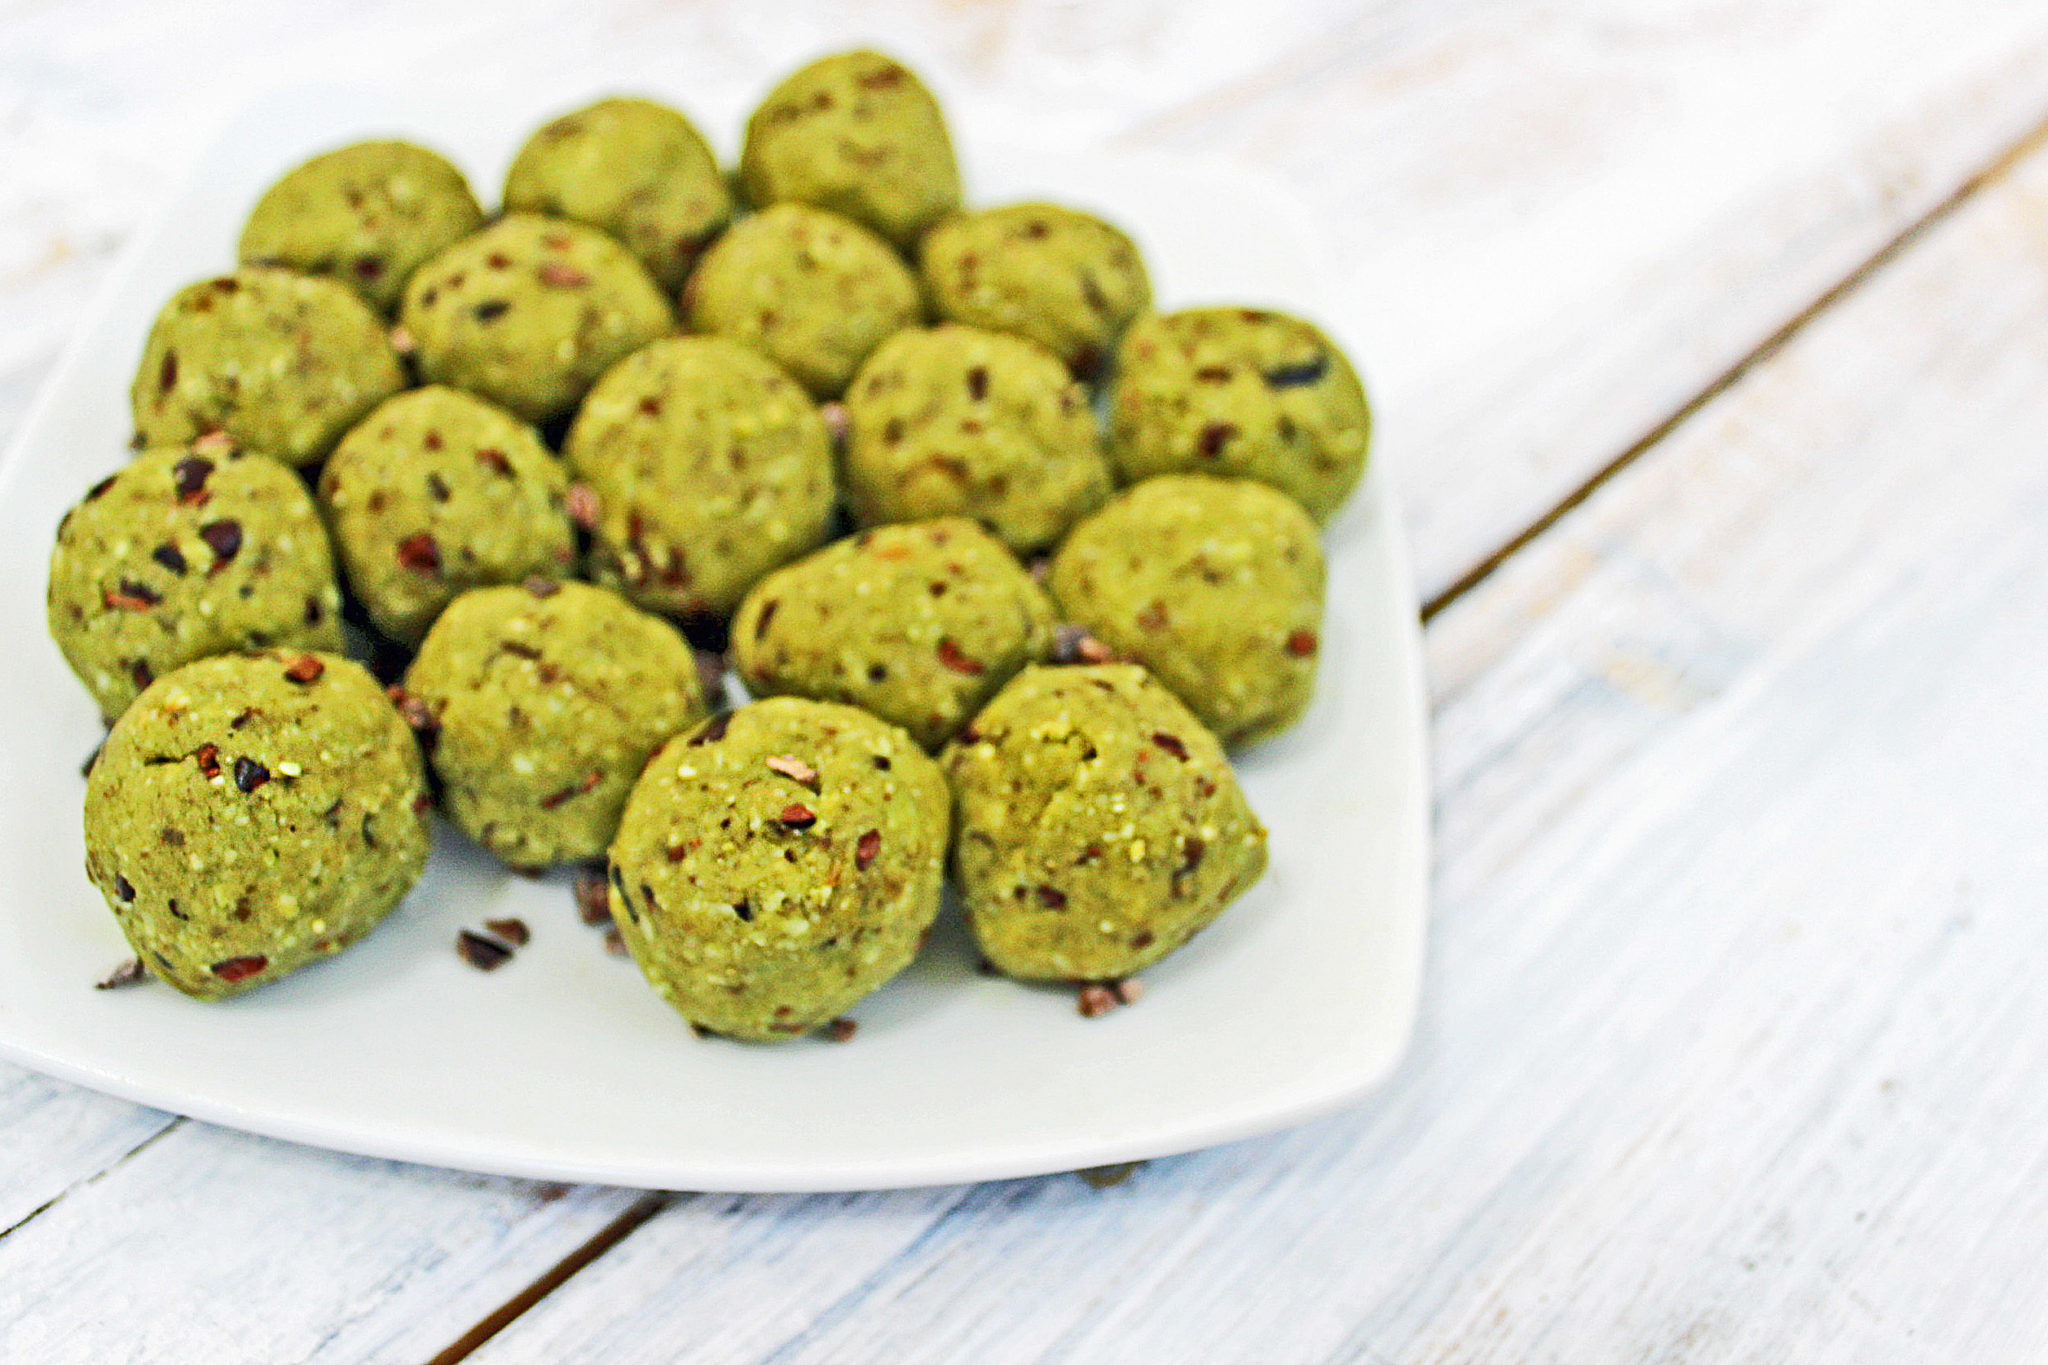 Matcha Mint Chip Protein Bites Recipe Healthy Eaton Energy Ball Cup Oat It Doesnt Raise Blood Pressure Or Heart Rate While Still Giving People That Boost When They Need